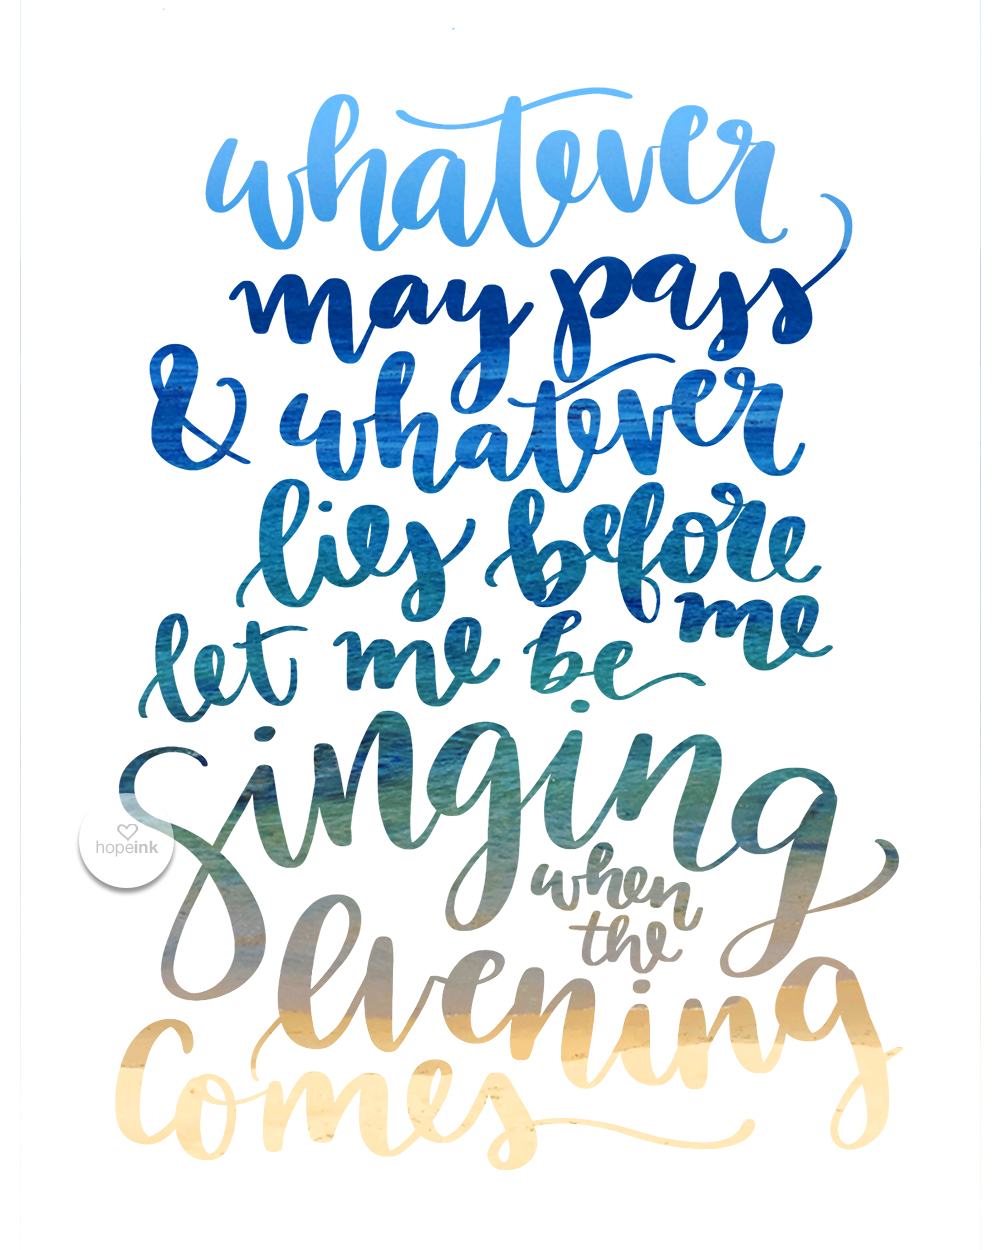 Let Me Be Singing When The Evening Comes | Hope Ink Hand Lettered Art.jpg